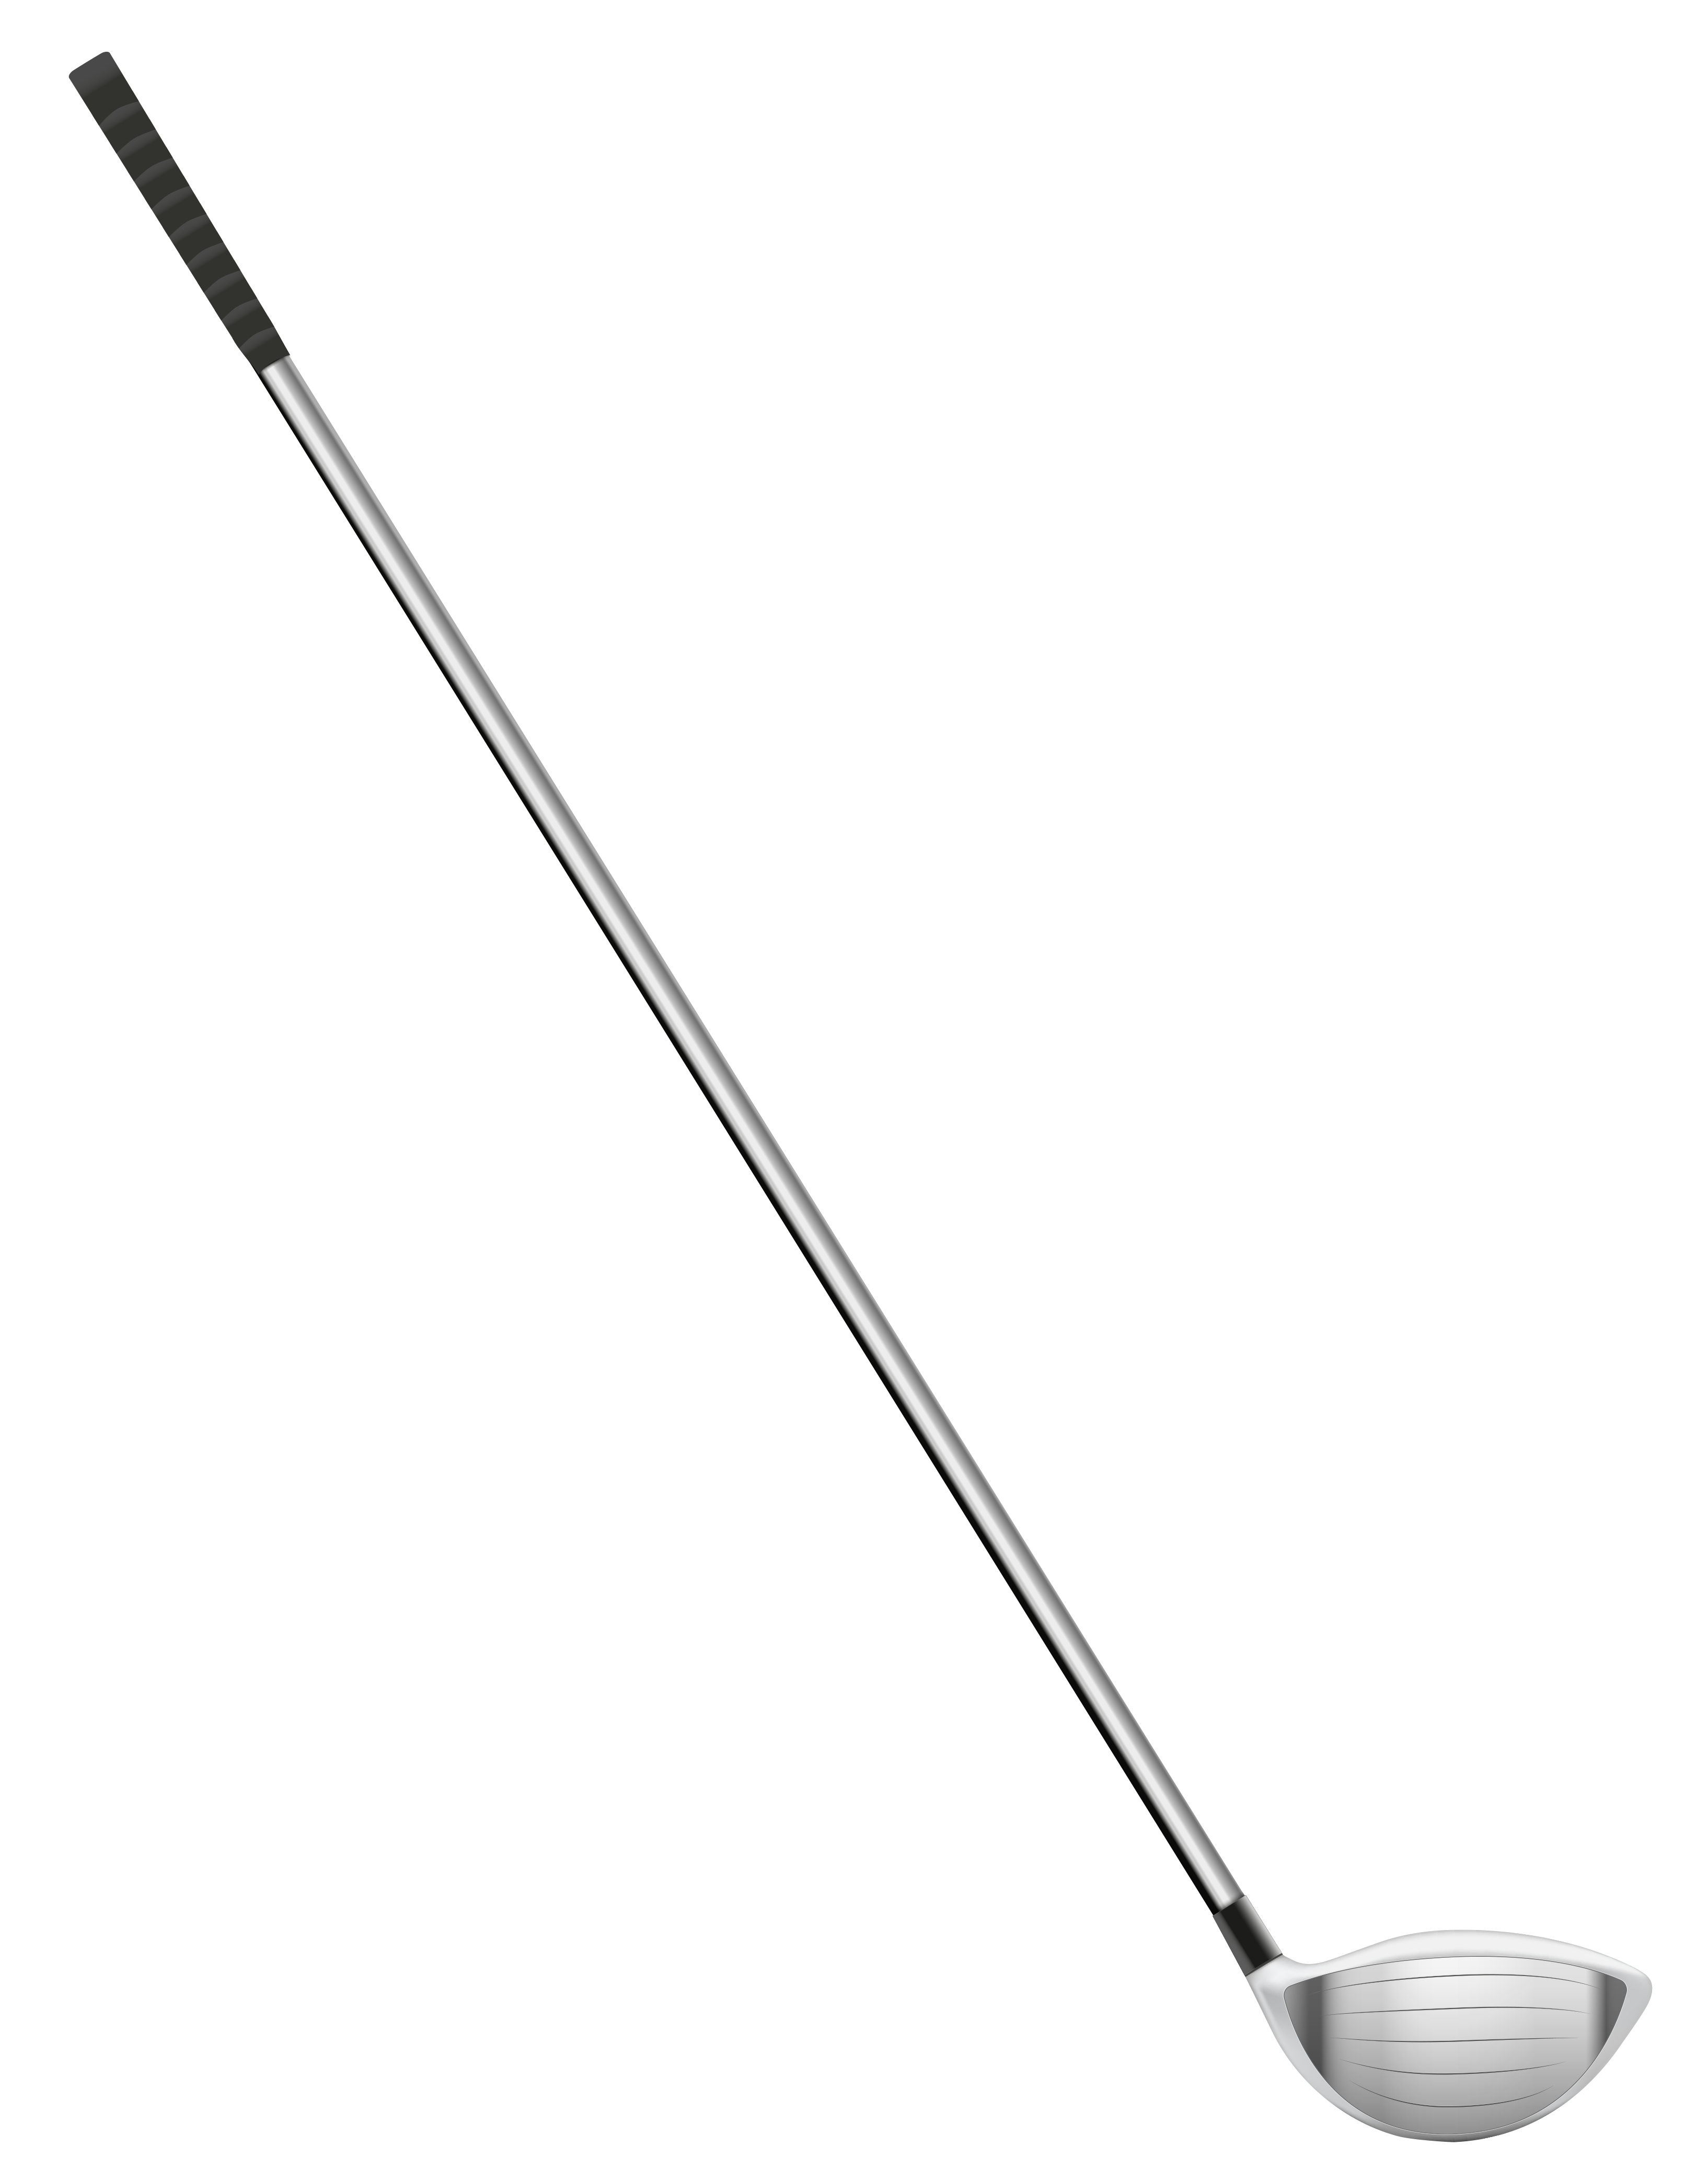 Cartoon golf clubs png. Club stick clipart picture